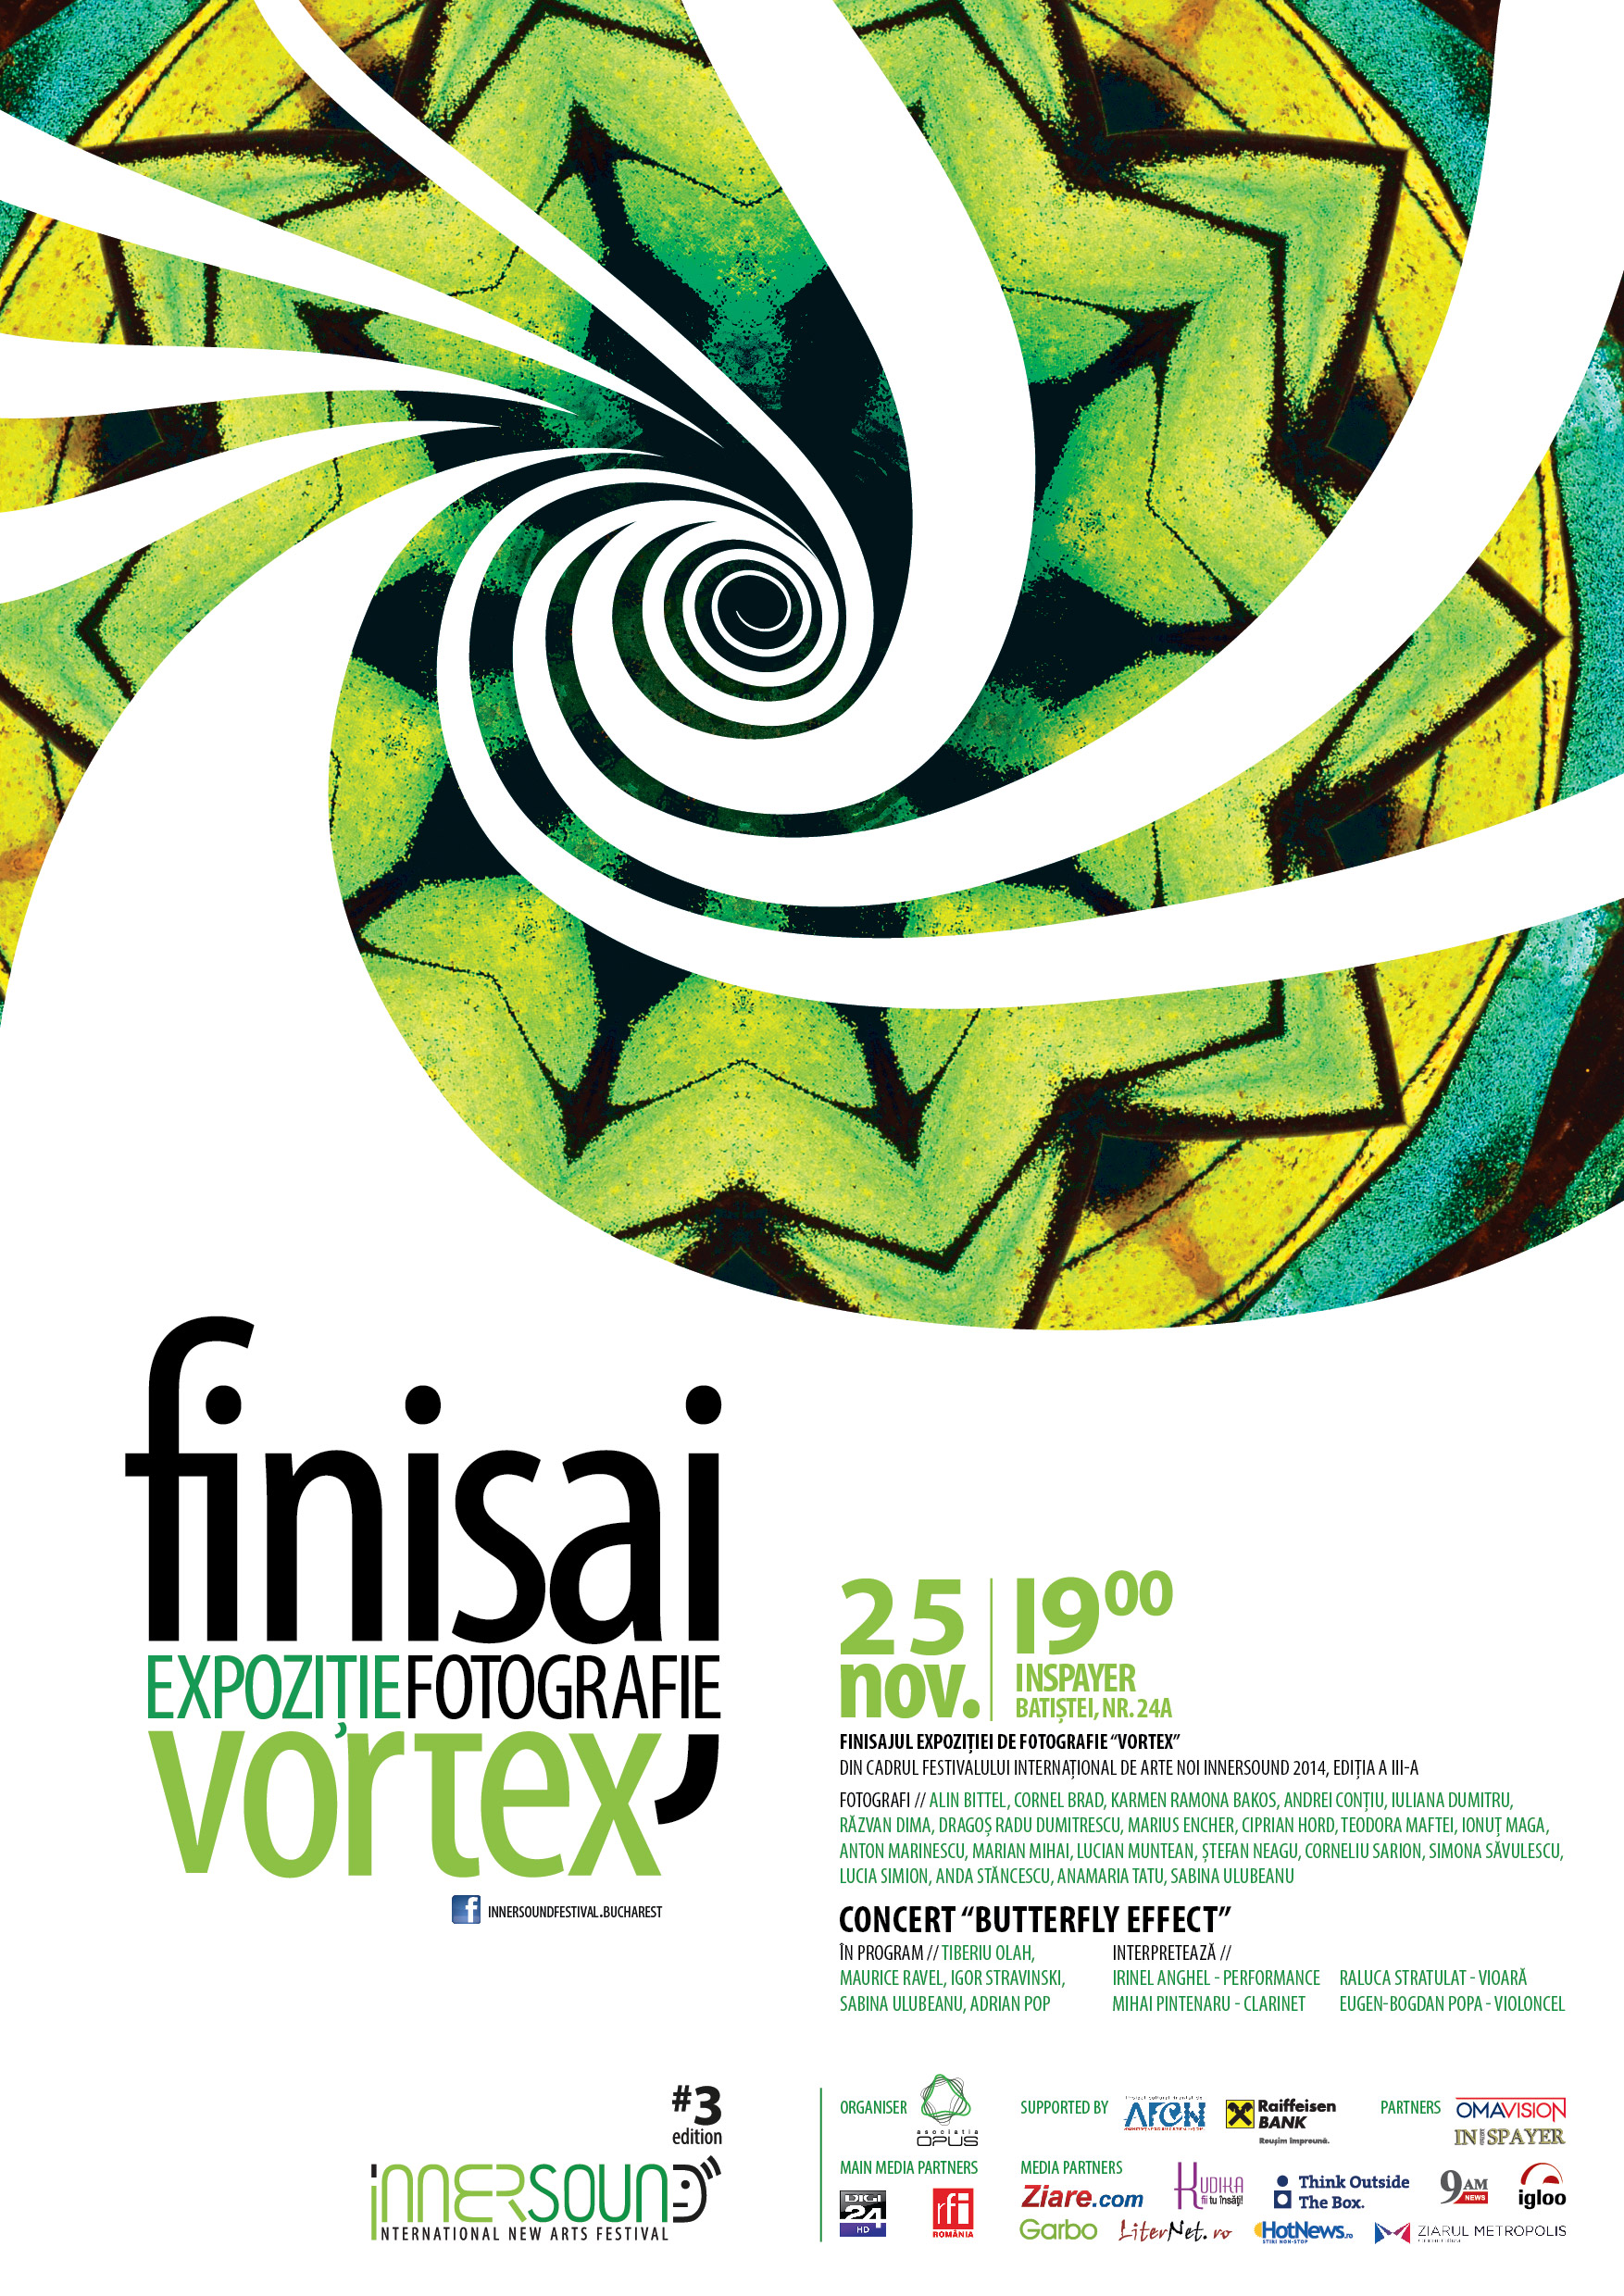 Finisaj VORTEX –  fotografie & concert-performance  @ InSpayer